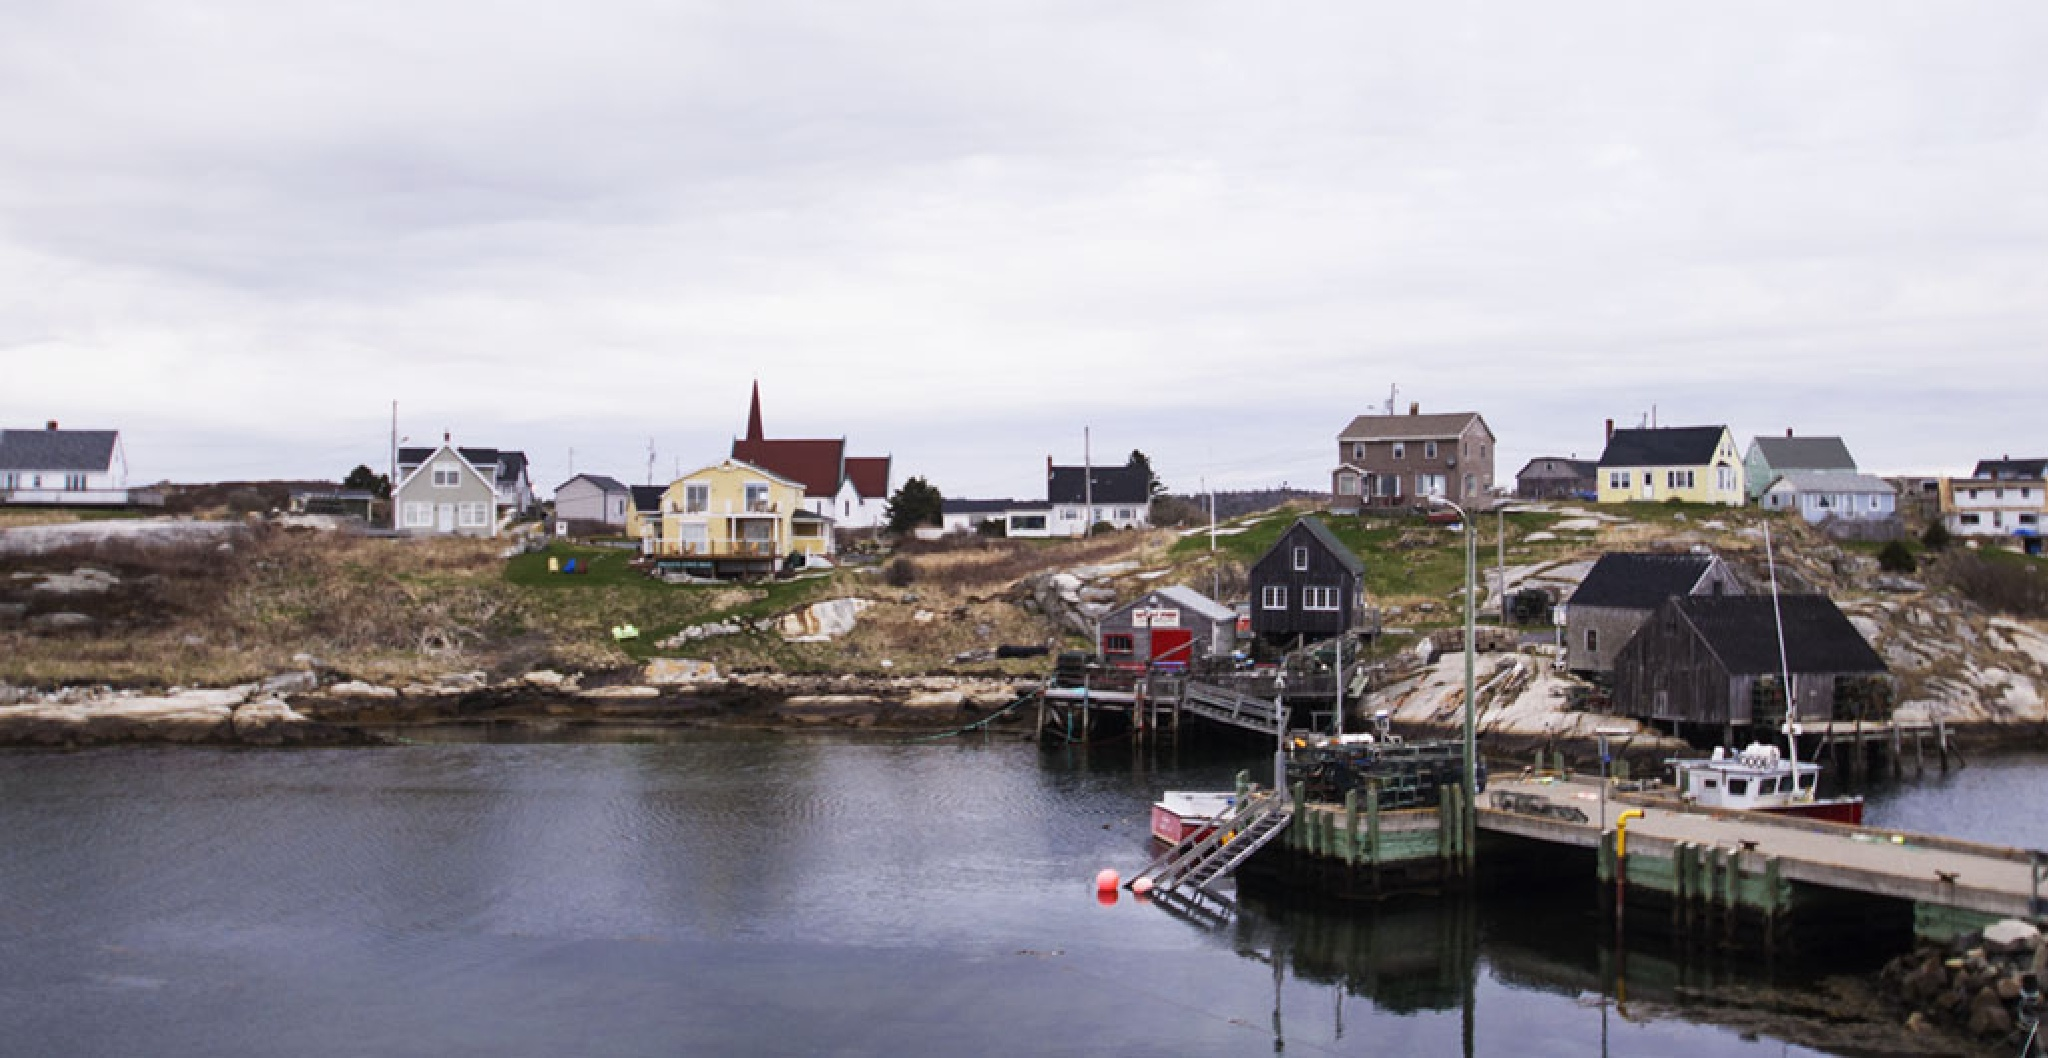 Village of Peggy's Cove by Wayne L. Talbot